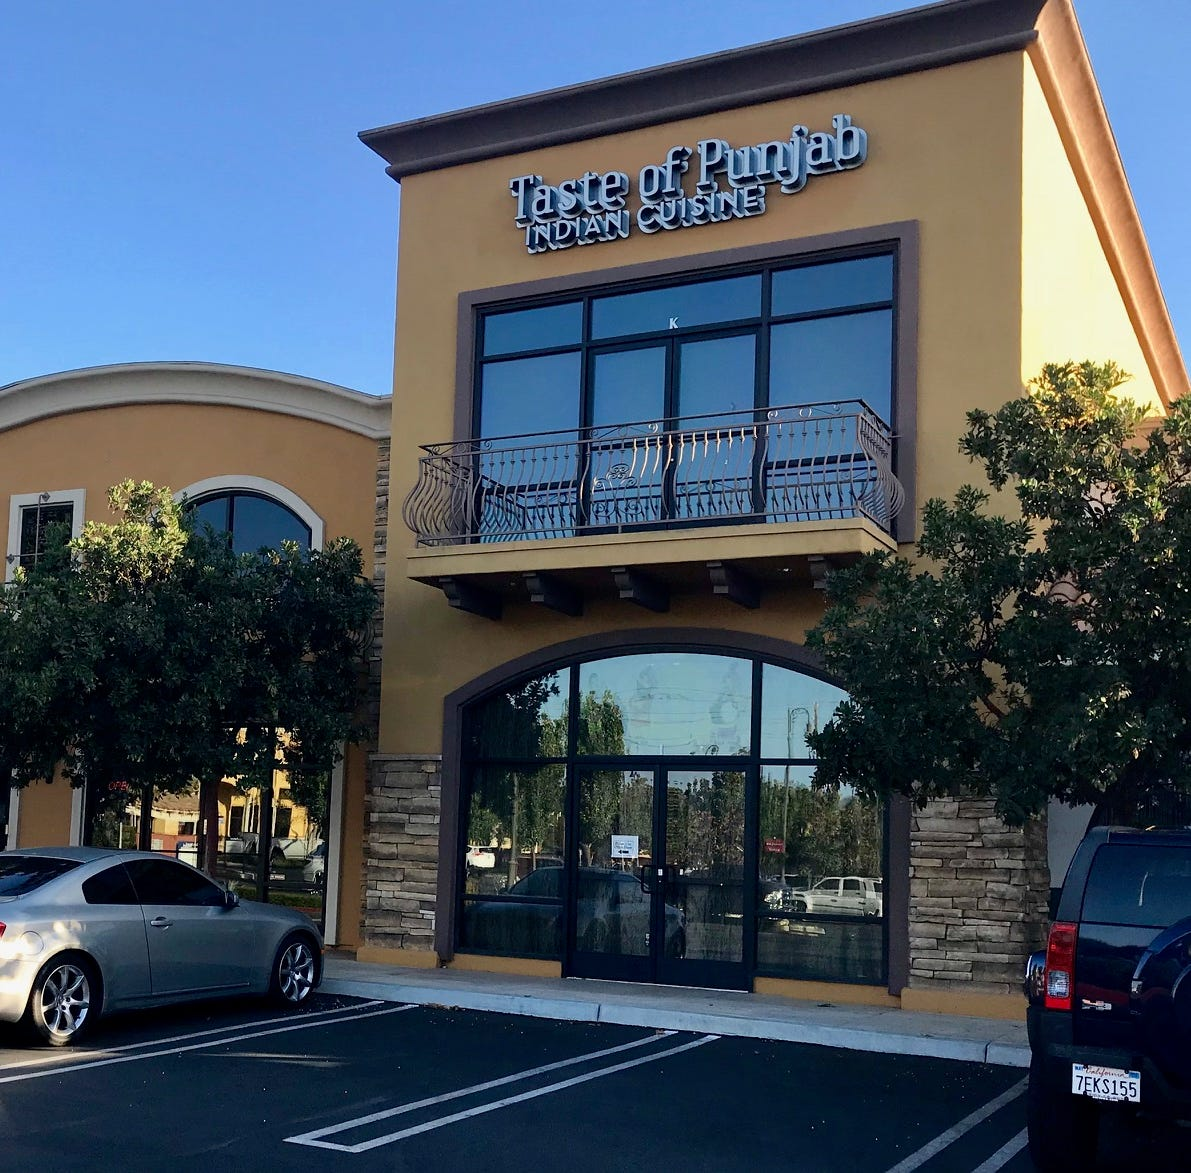 Taste of Punjab Indian Cuisine is in a busy Moorpark shopping center, but inside the restaurant there is serenity and enticing food.